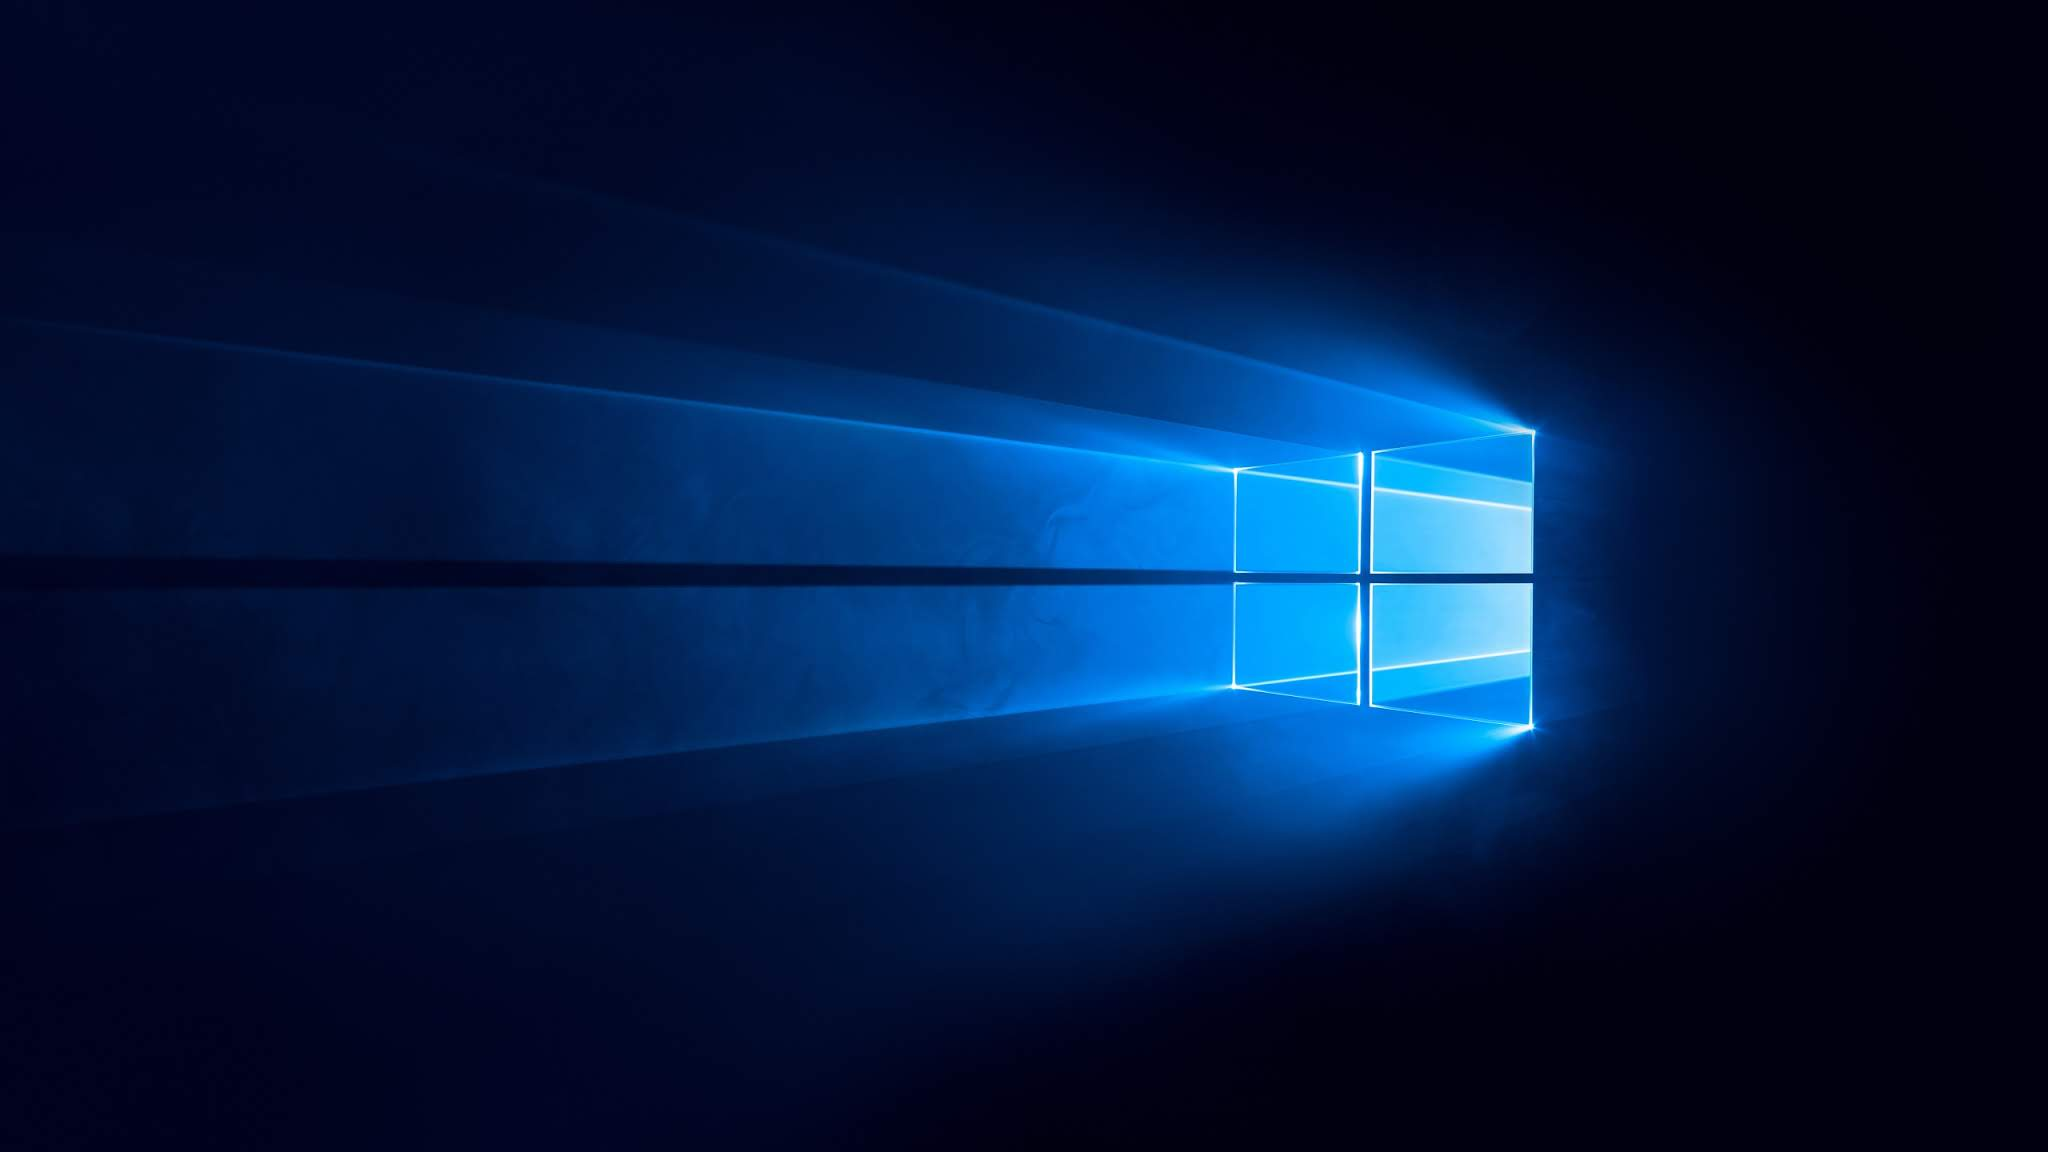 Microsoft mitiga problemas da última actualização do Windows 10